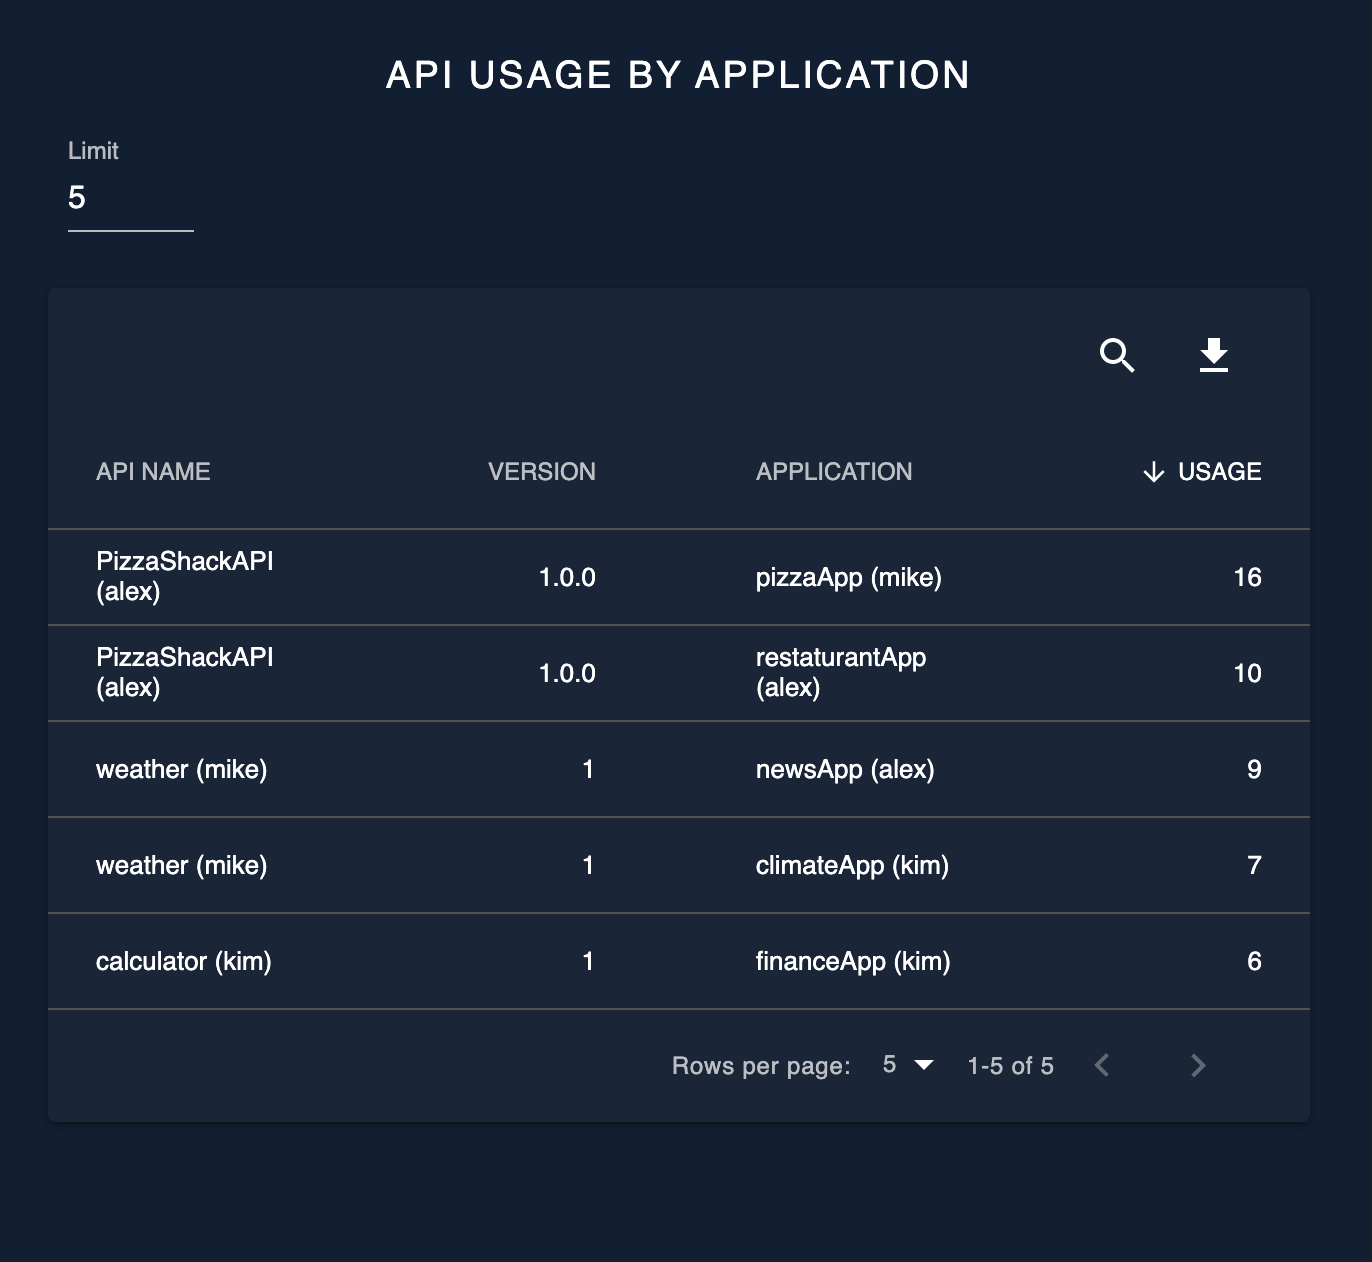 API usage by application